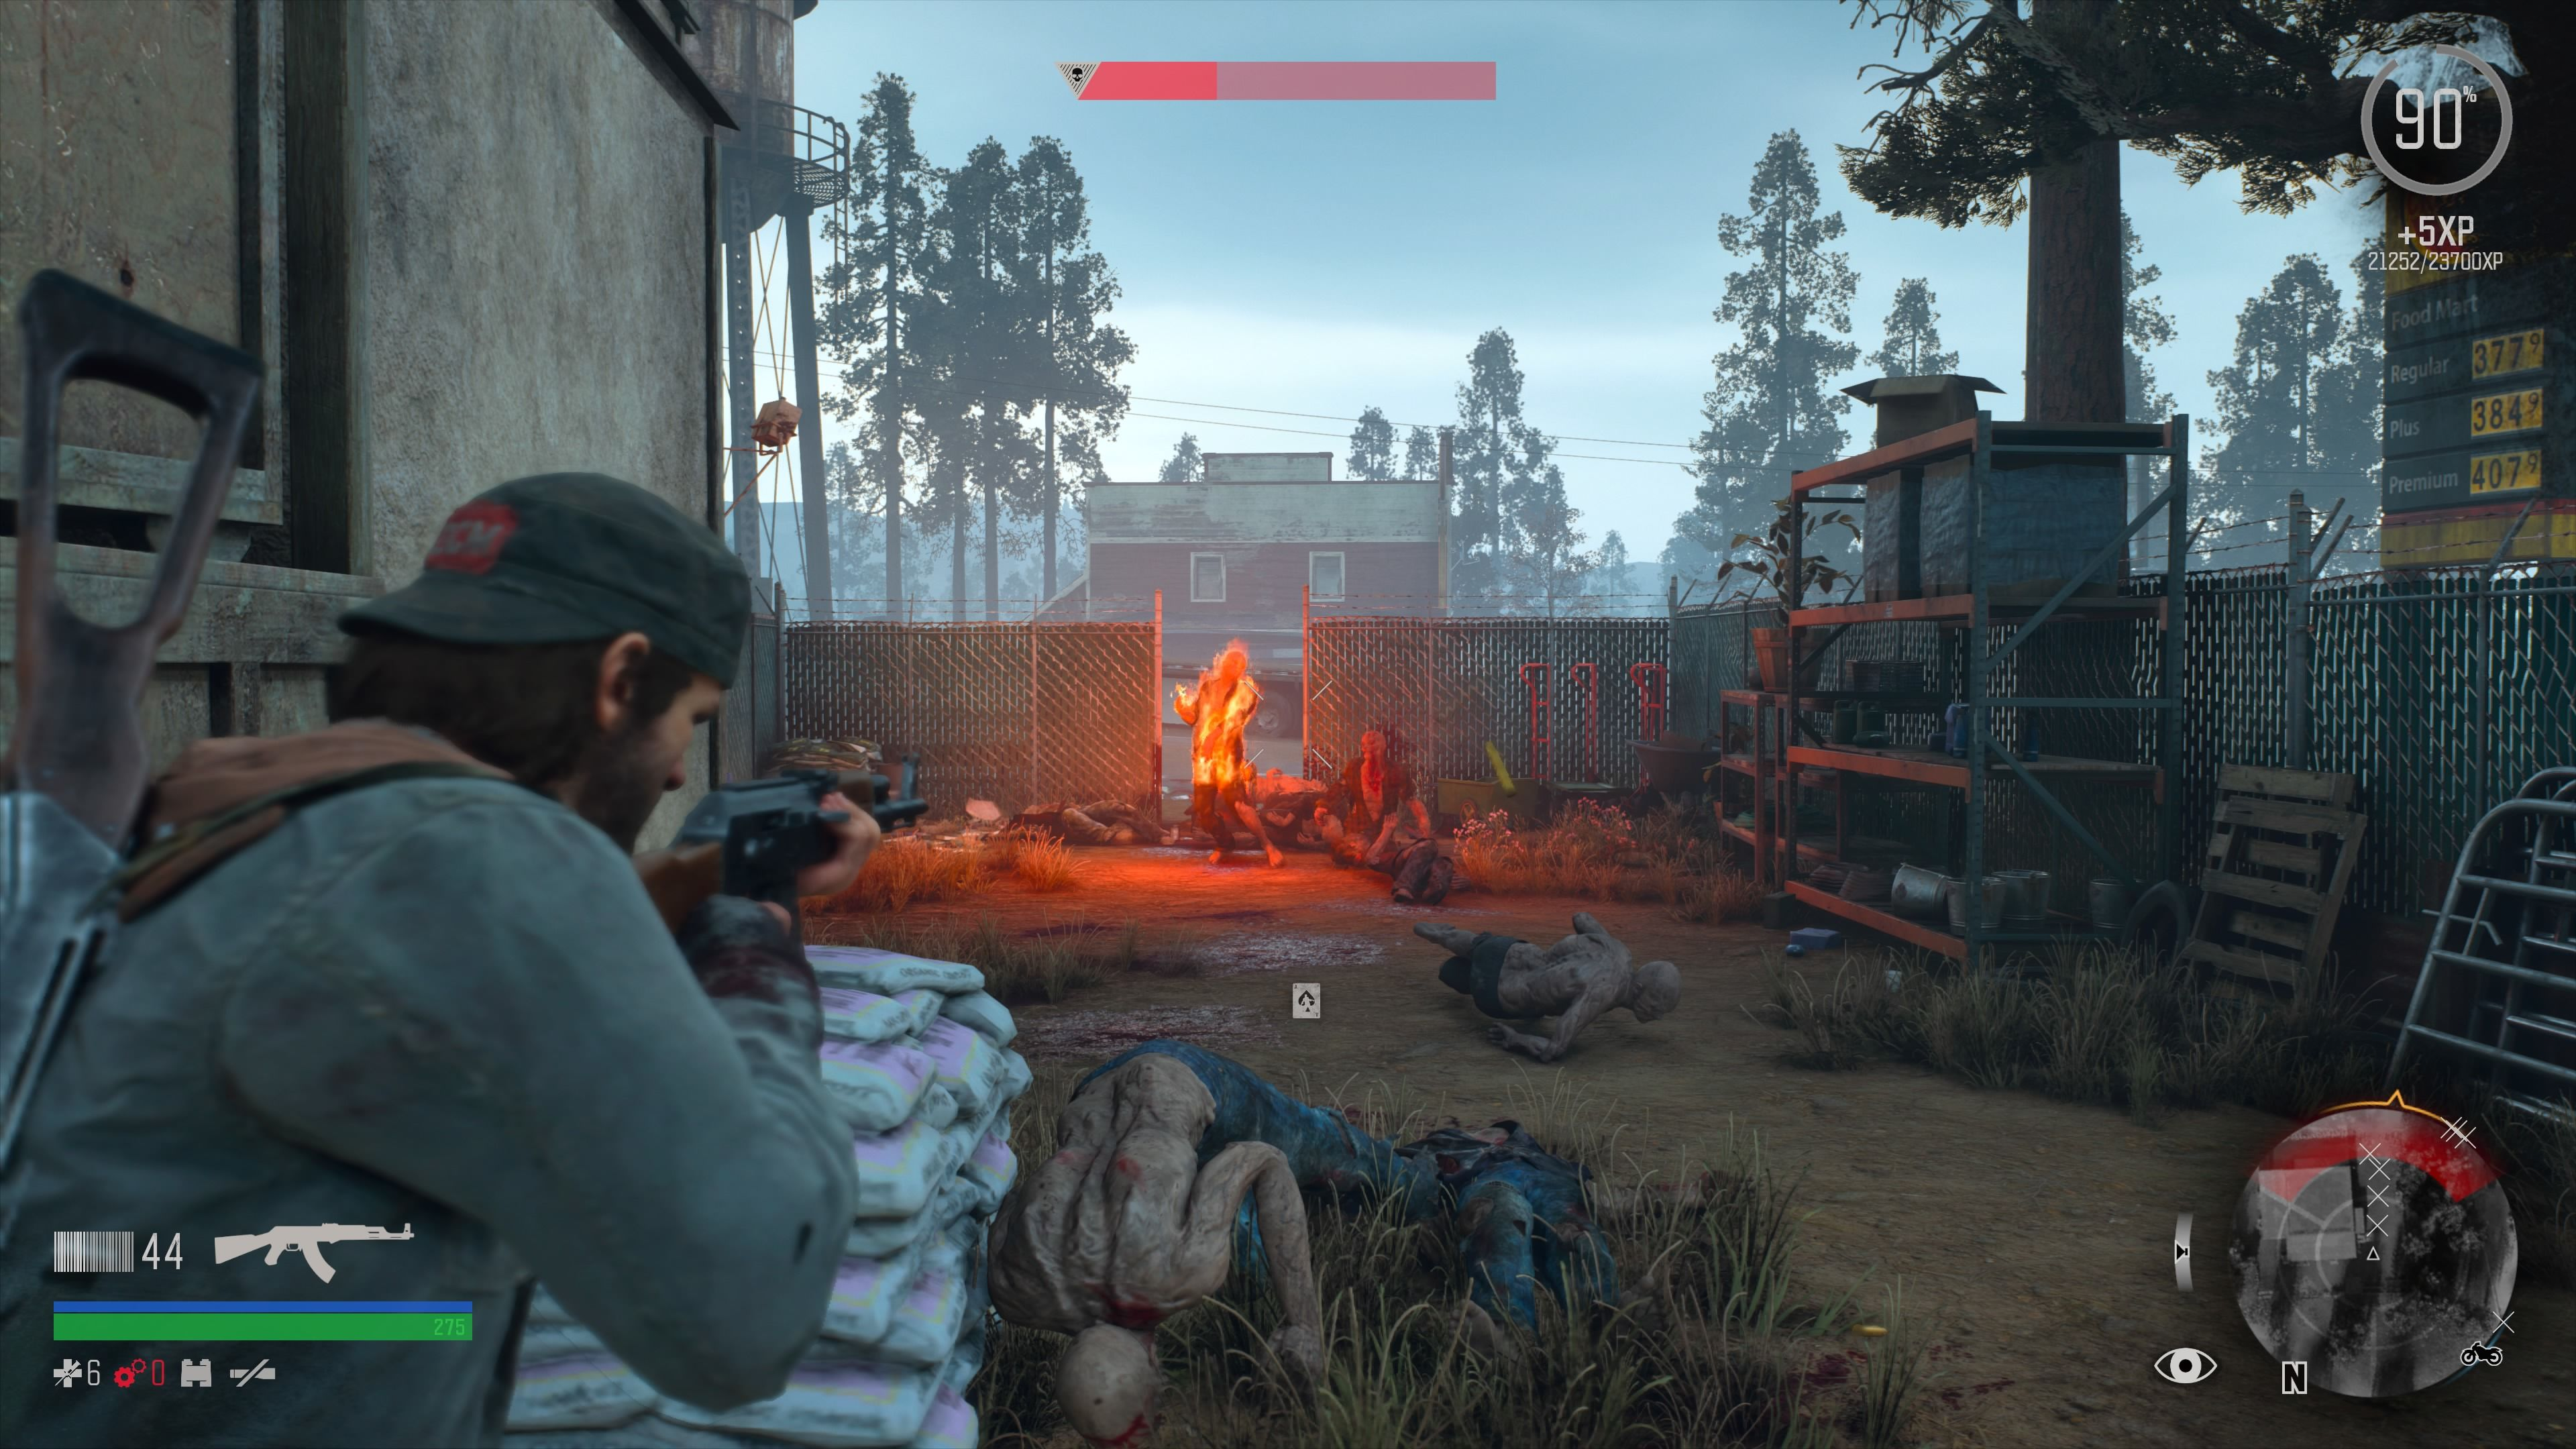 Days Gone PlayStation 4 Molotov cocktails are very useful for burning down a large group of enemies